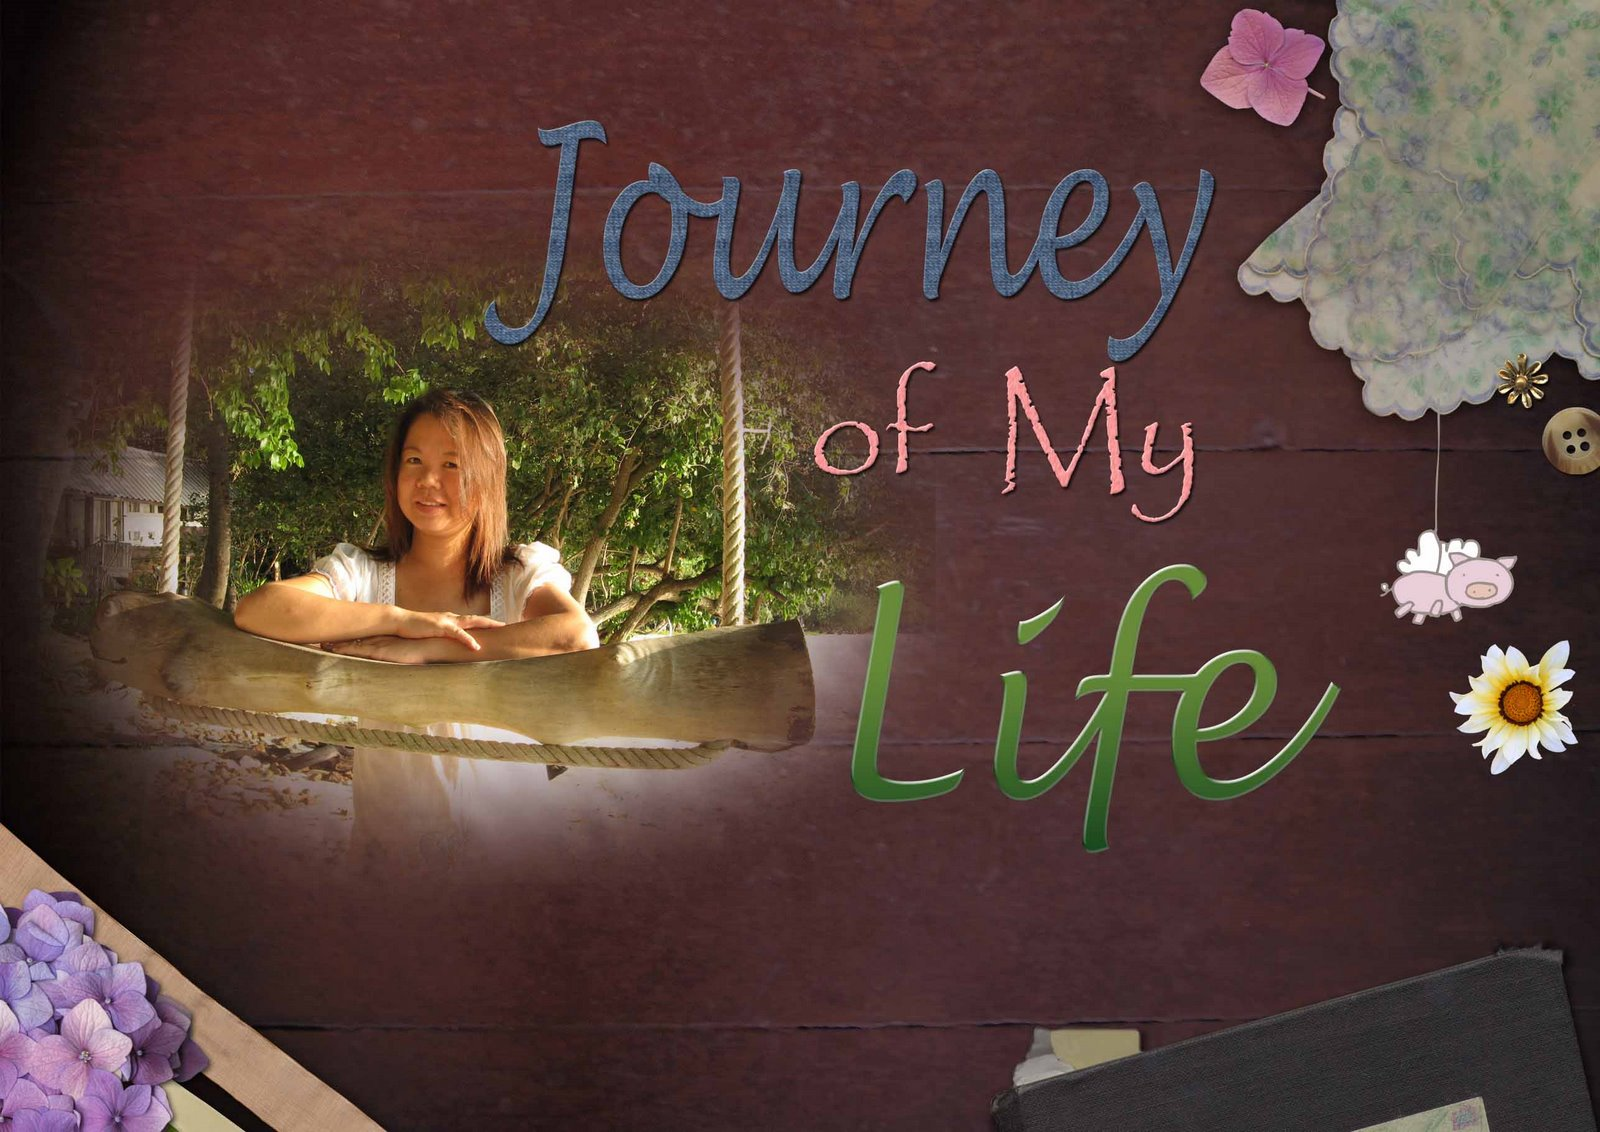 Journey of My Life